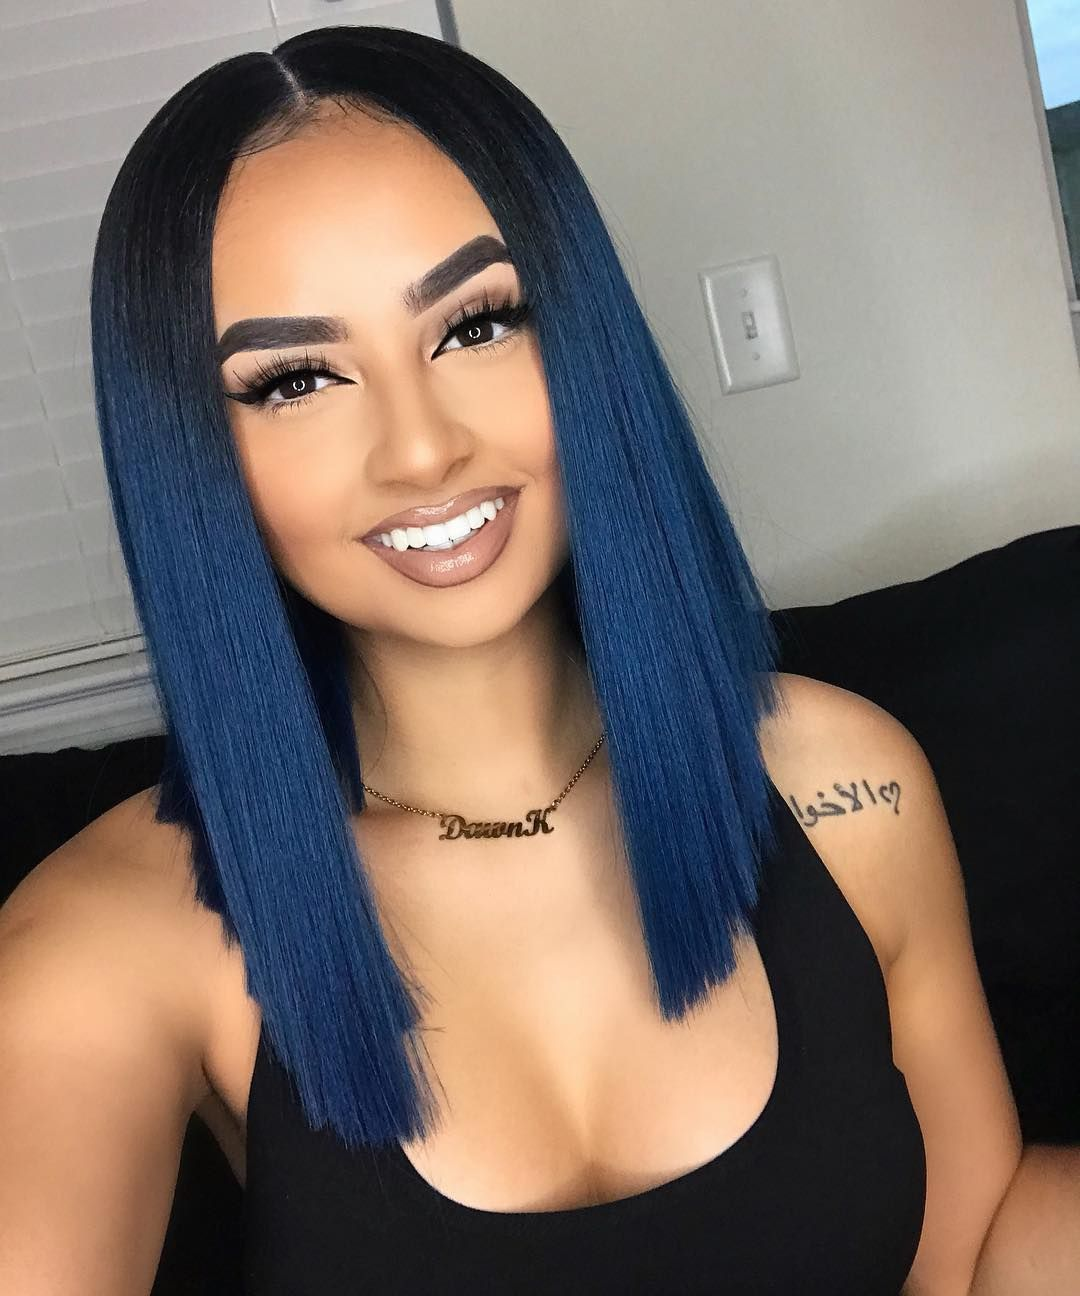 Raw Indian wholesale Remy human hair Lace front Wigs Human Hair natural  looking 360 lace Wigs with babyhair short bob cut wigs freeshipping ... 4b0c46d9b4